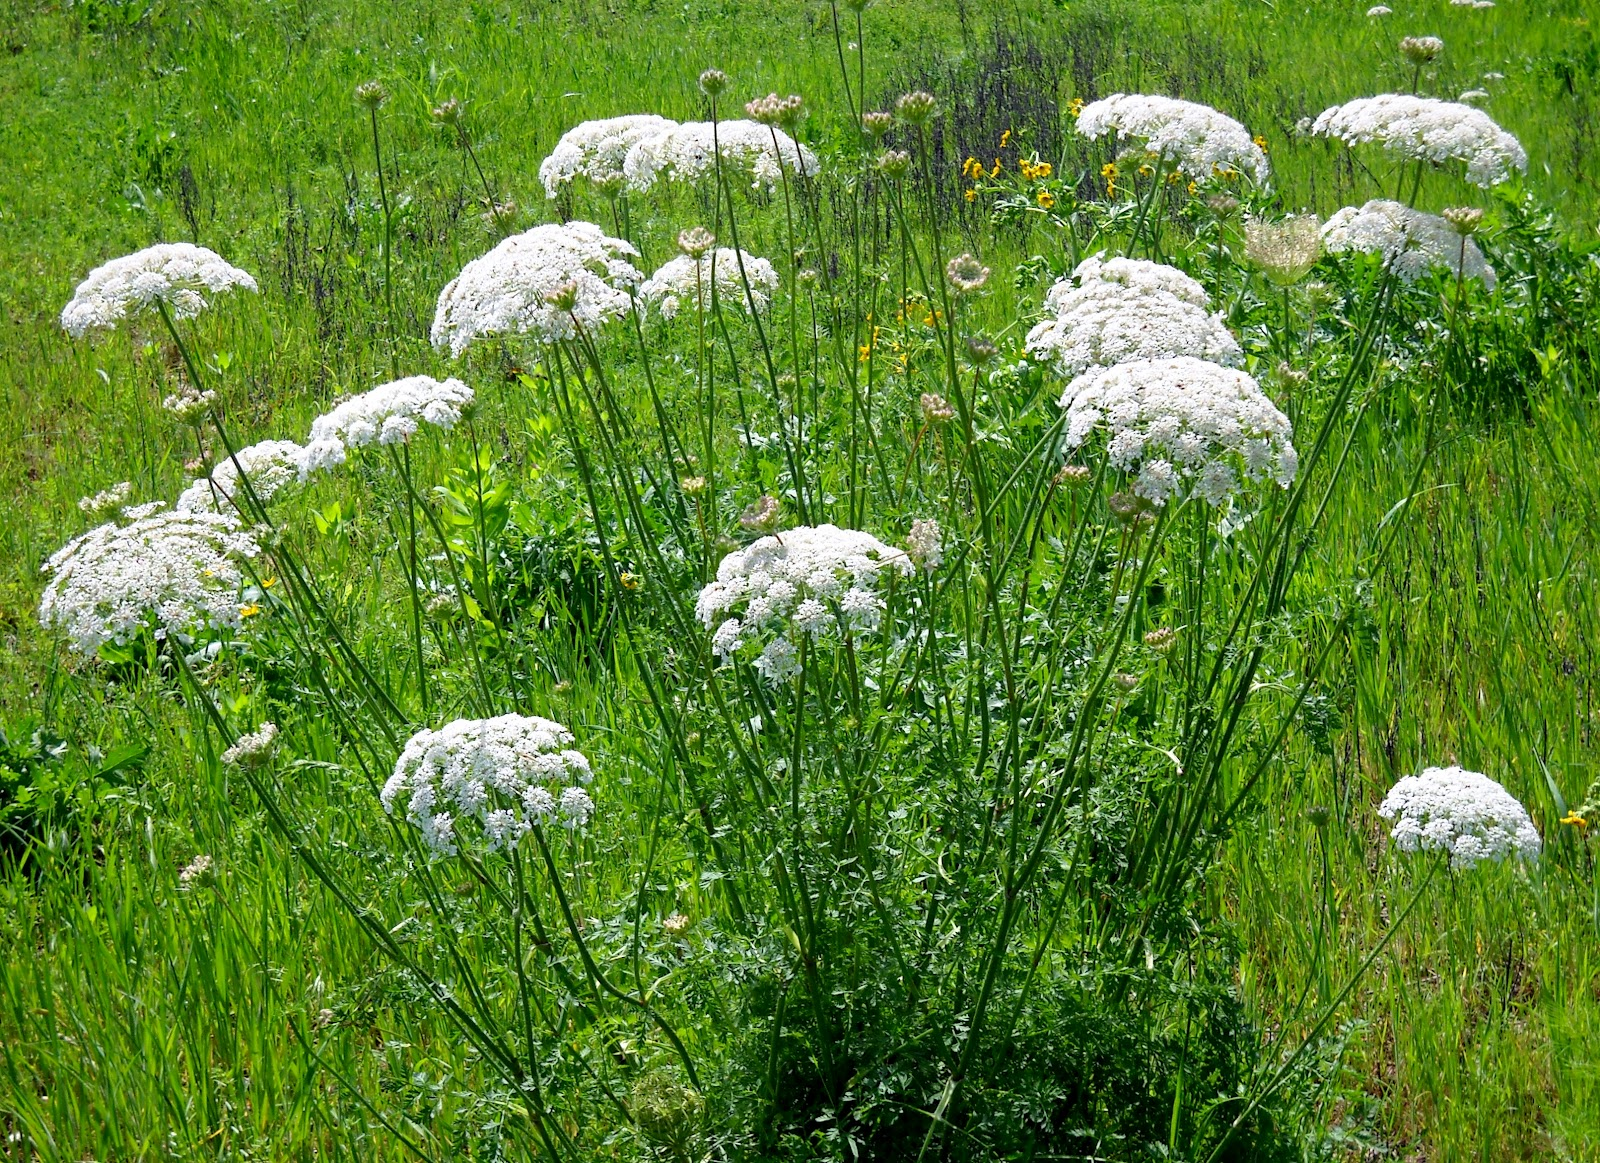 White Rock Lake Dallas Texas Queen Annes Lace An Intriguing